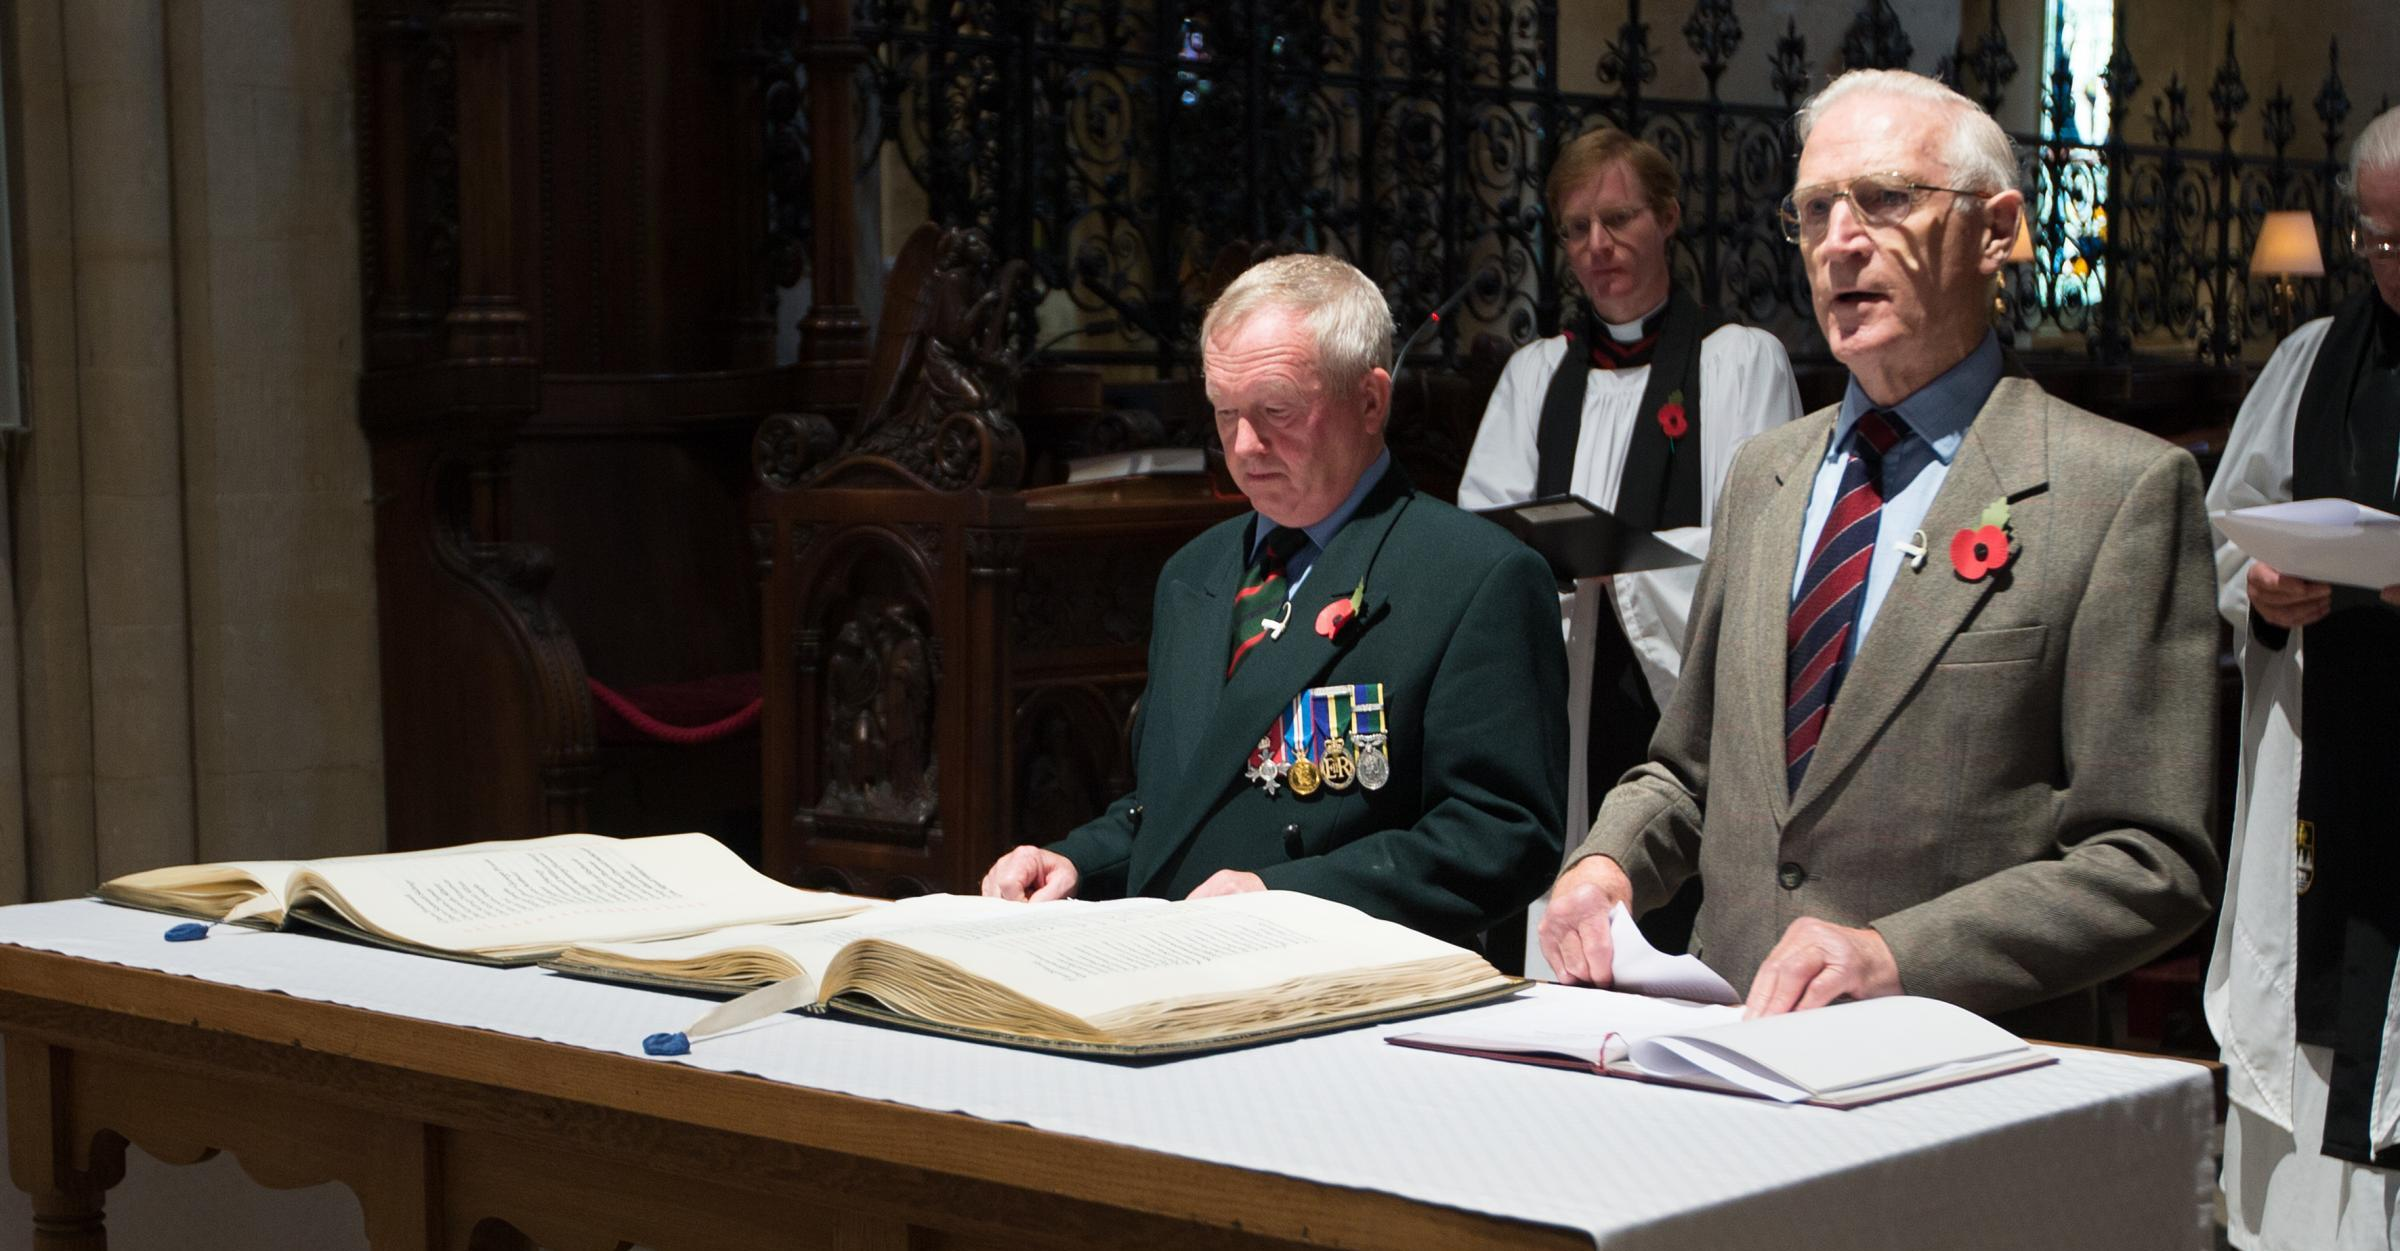 Terry Roper, left, chairman of the Oxford branch of the Royal Green Jackets Association with Ronald Barnes of Oxfordshire Yeomanry